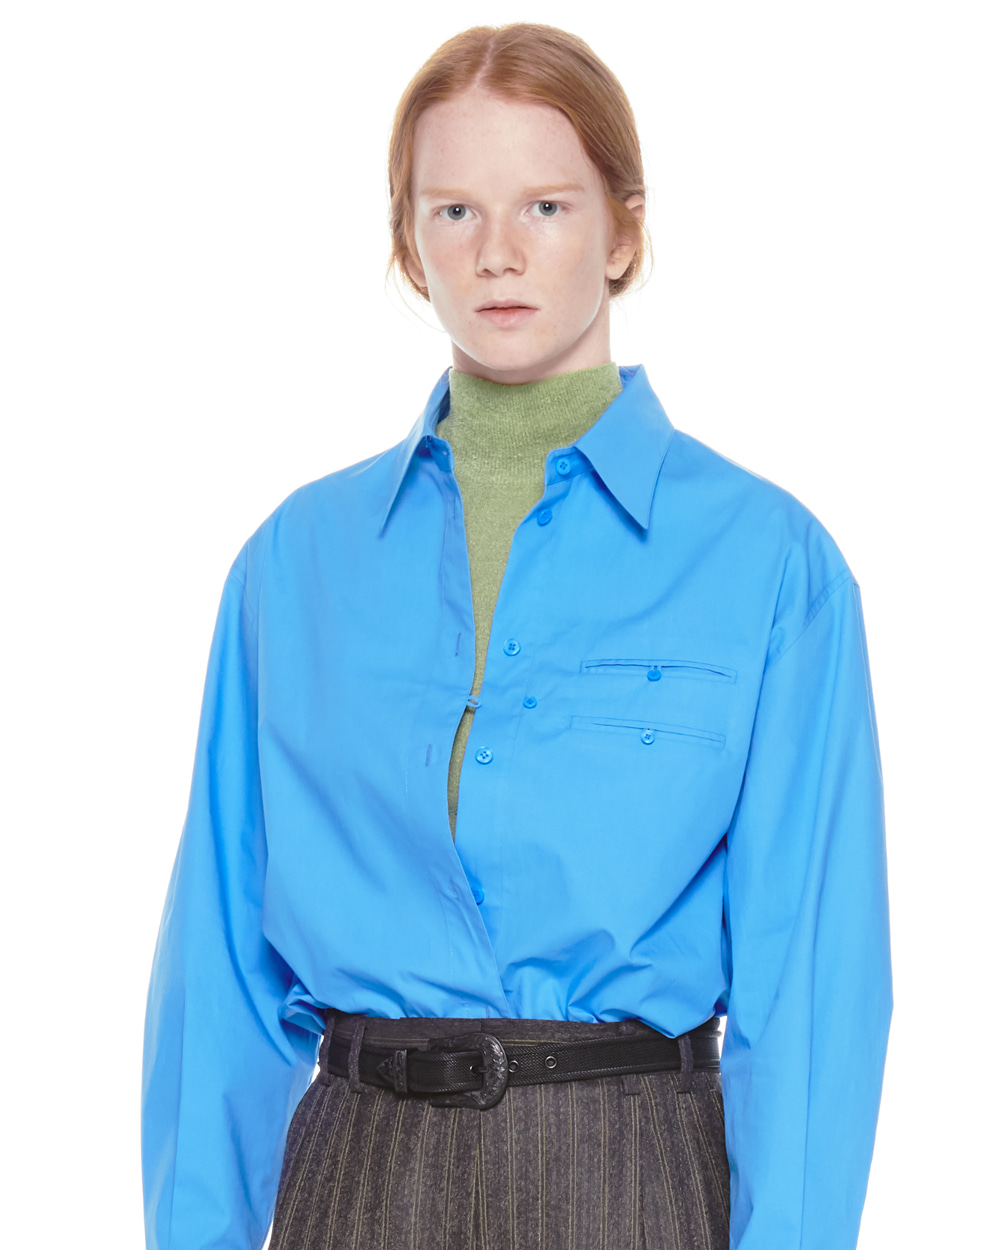 FW20 NECK TIE POCKET SHIRT